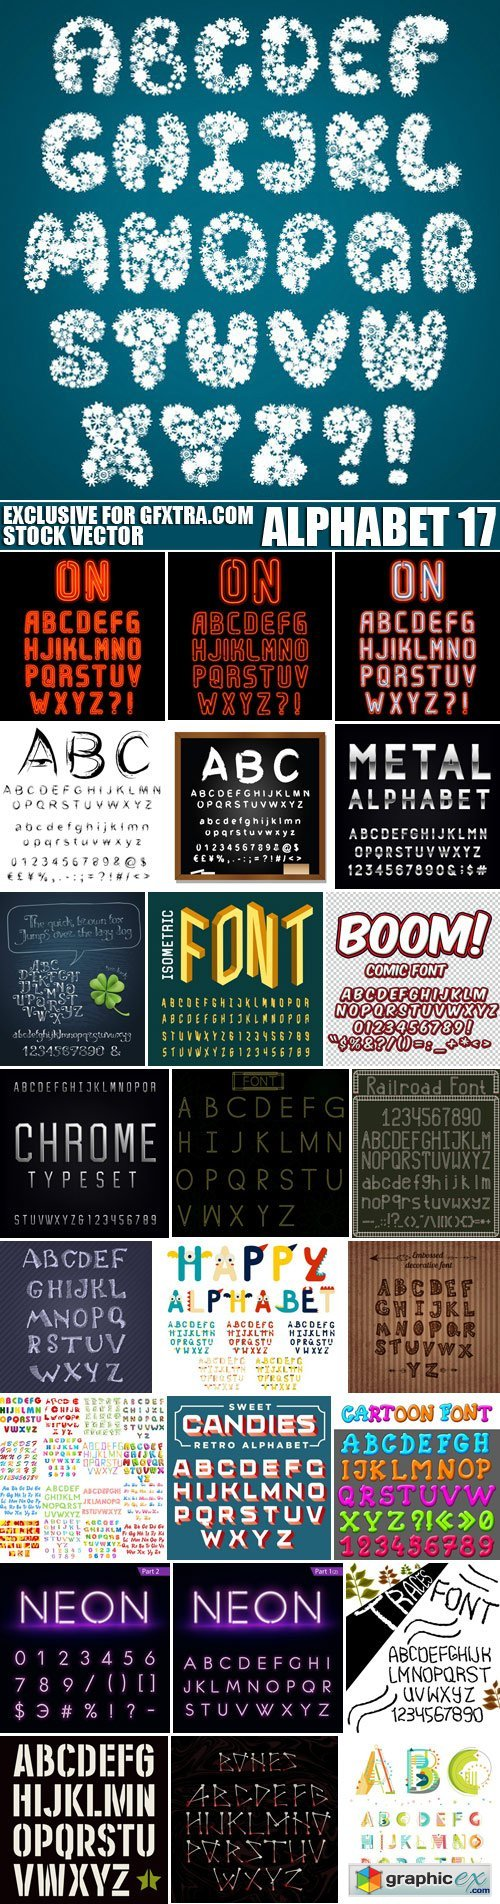 Stock Vectors - Alphabet 17, 25xEPS